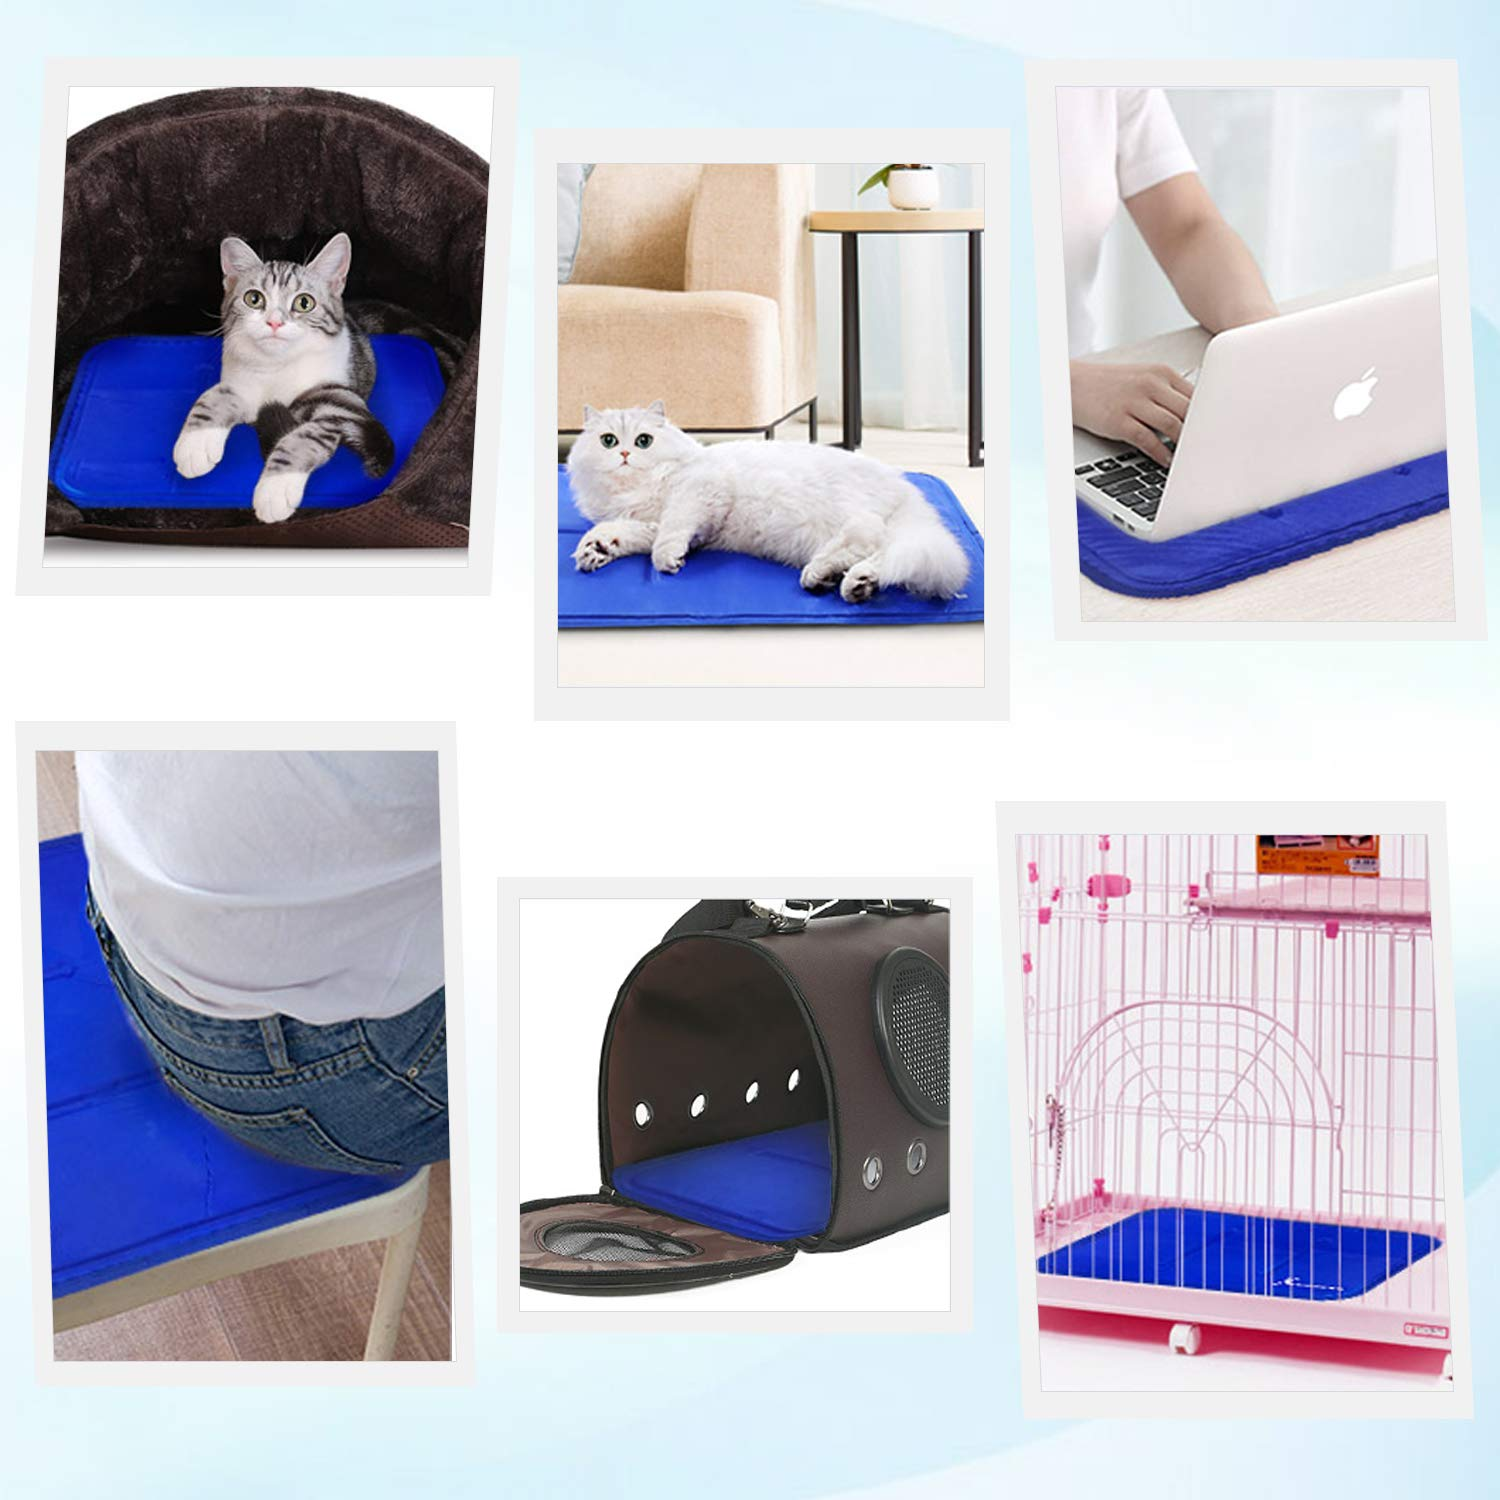 L Pressure-Activated Self Cooling Gel Mat for Kennels AlfaView Pet Cooling Pad for Dogs /& Cats Crates and Beds Ideal for Home /& Travel 35.4 * 19.7Inch